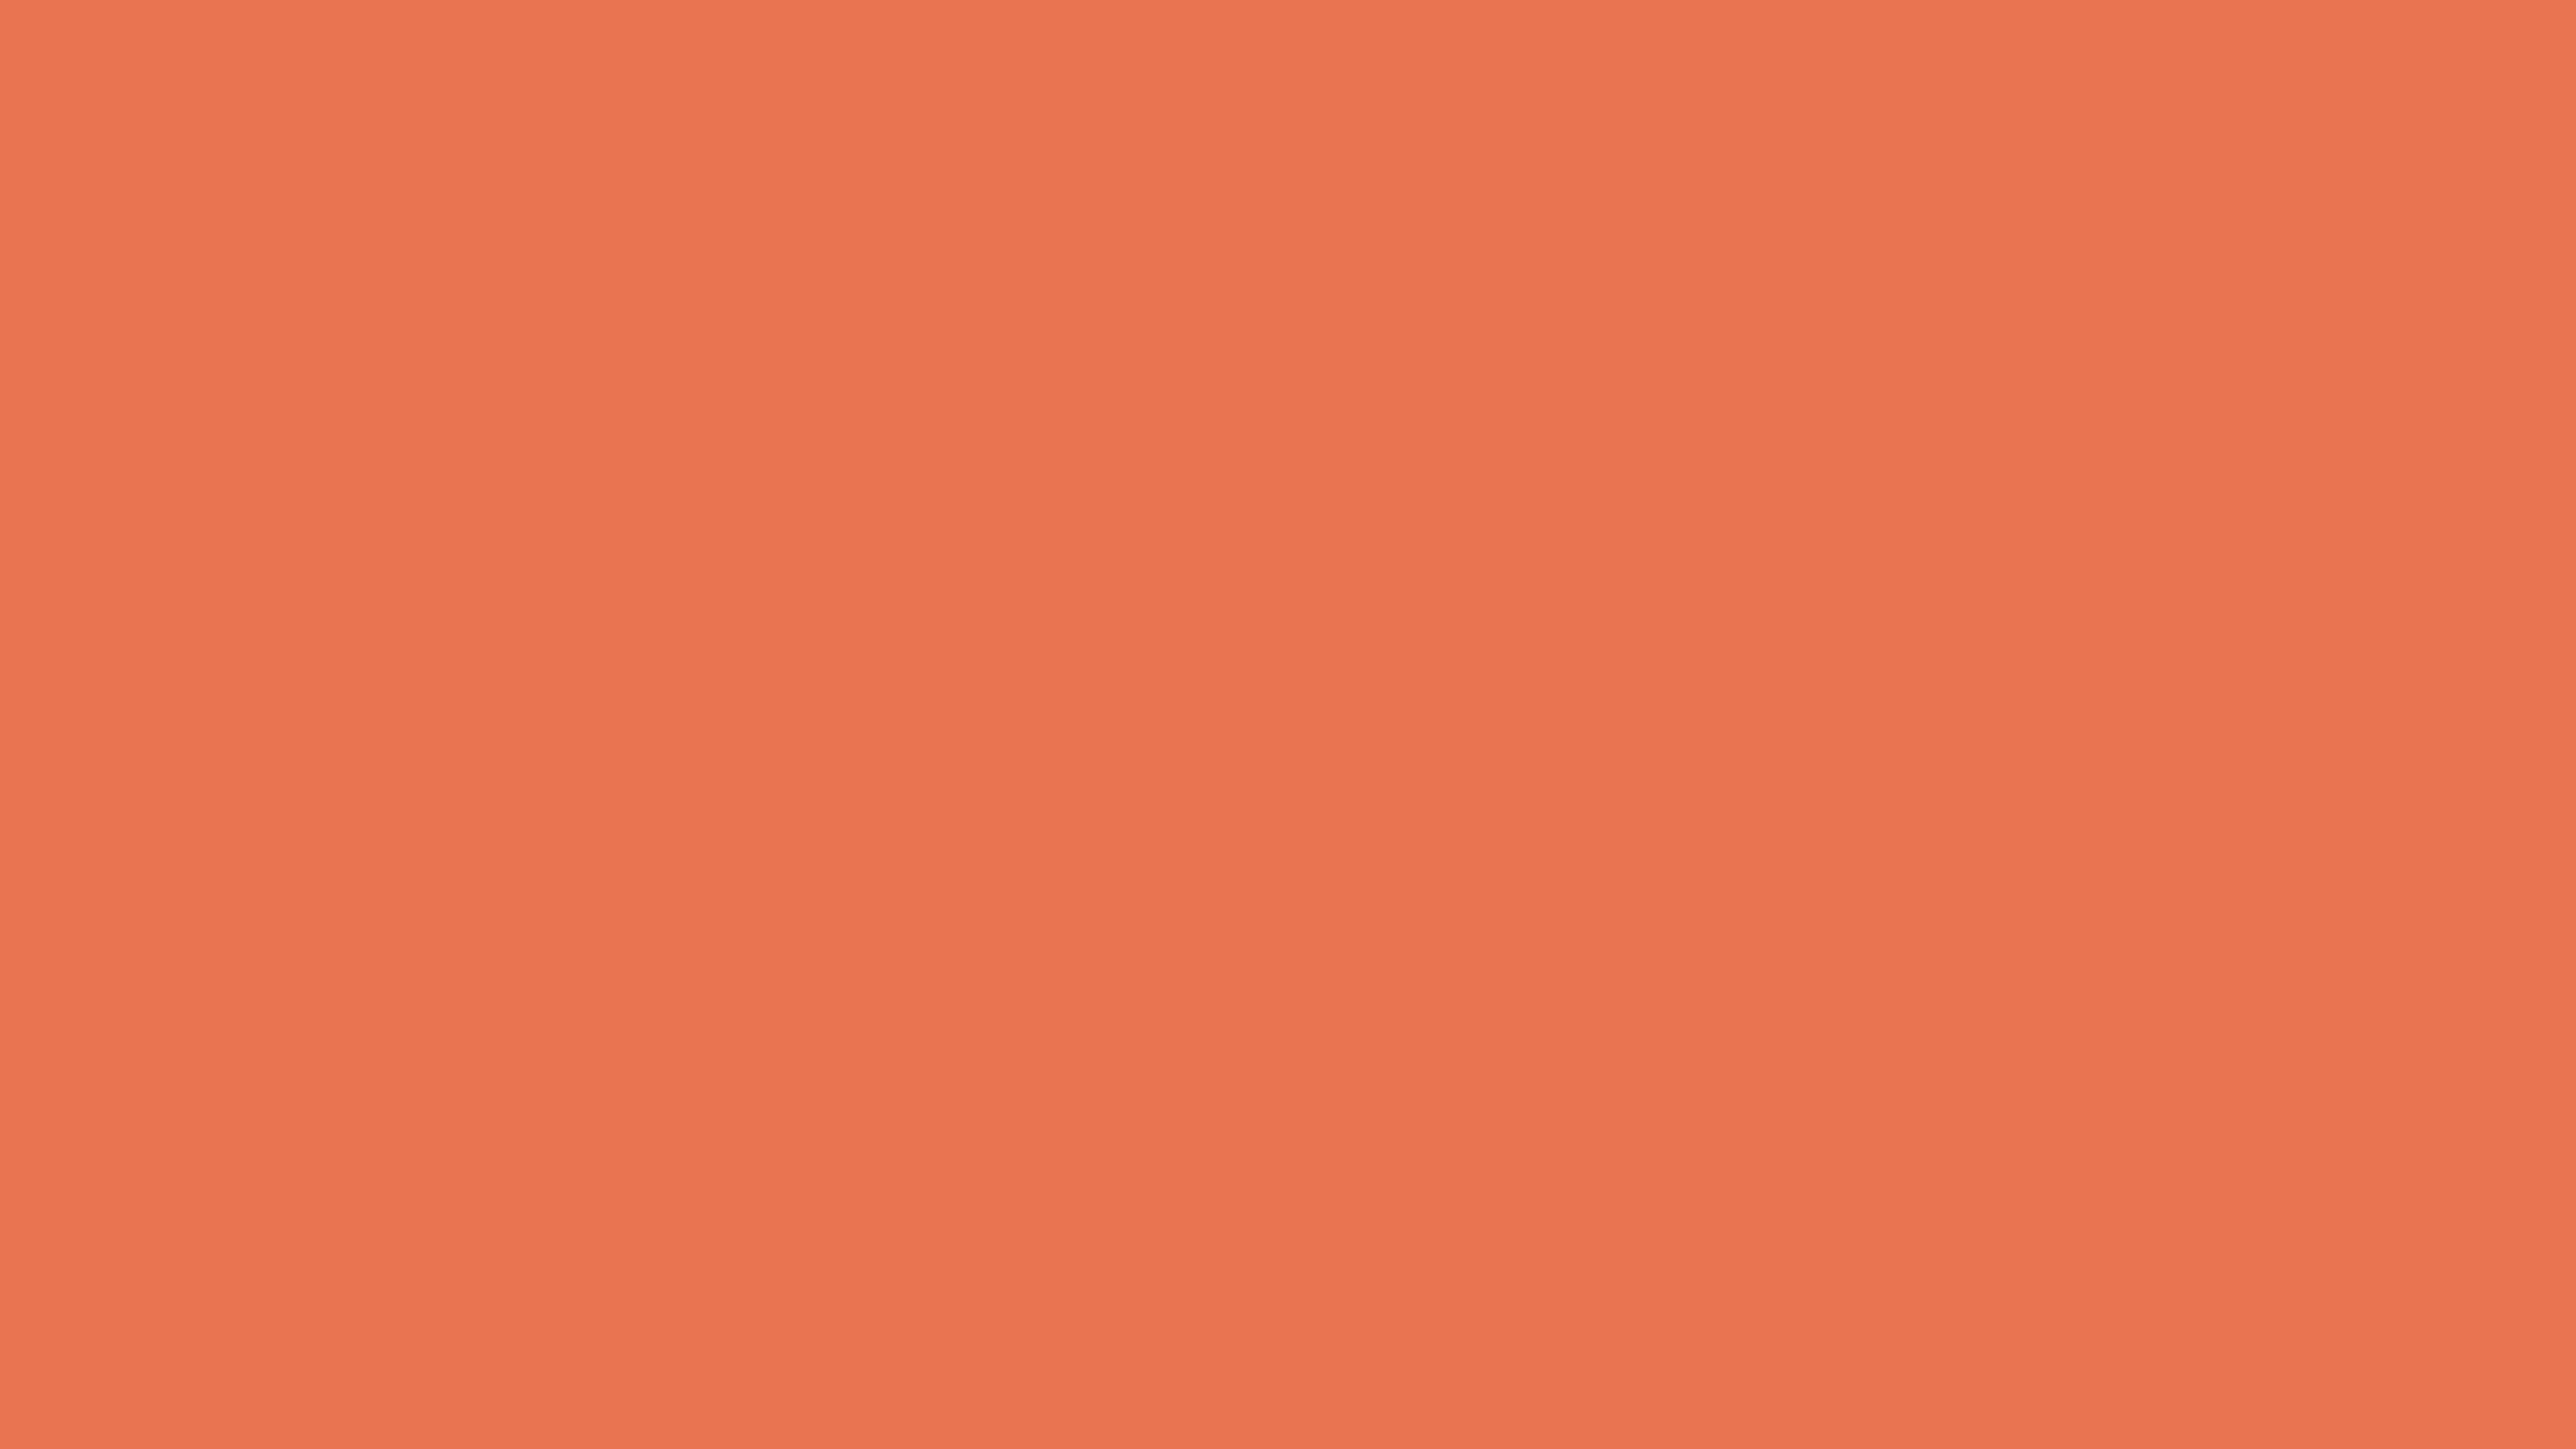 4096x2304 Light Red Ochre Solid Color Background